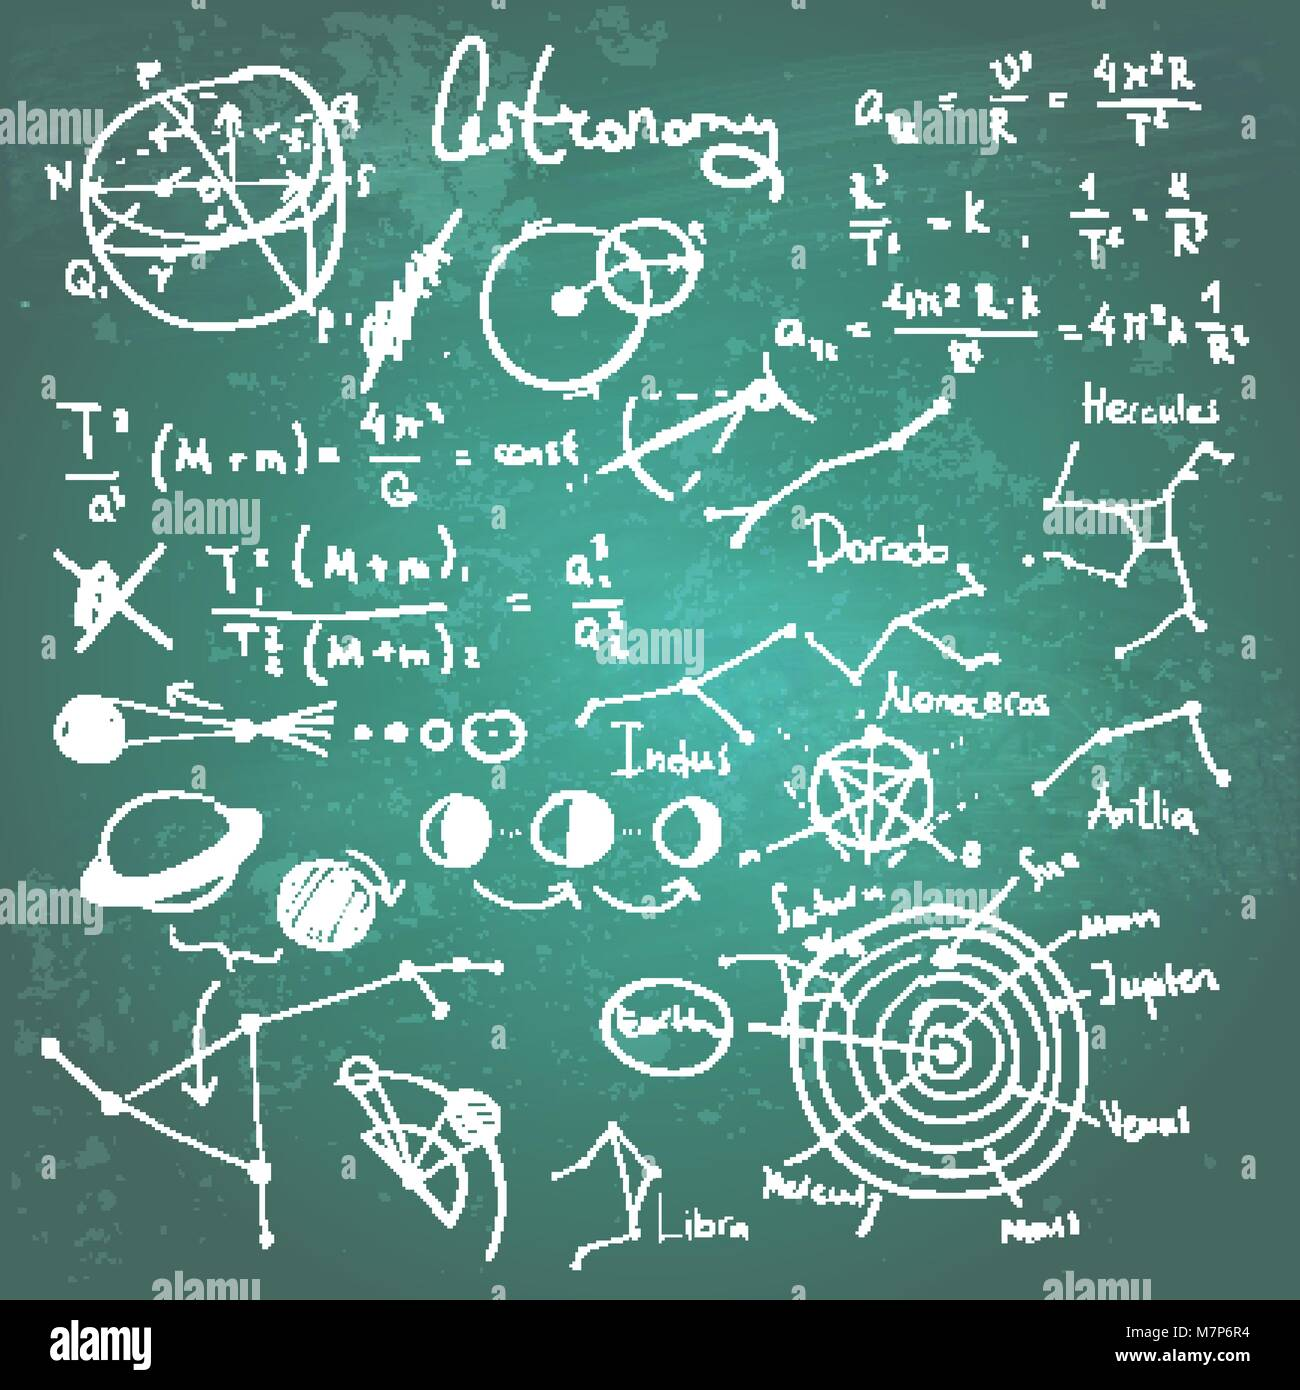 Astronomic drawings on a chalkboard - Stock Vector